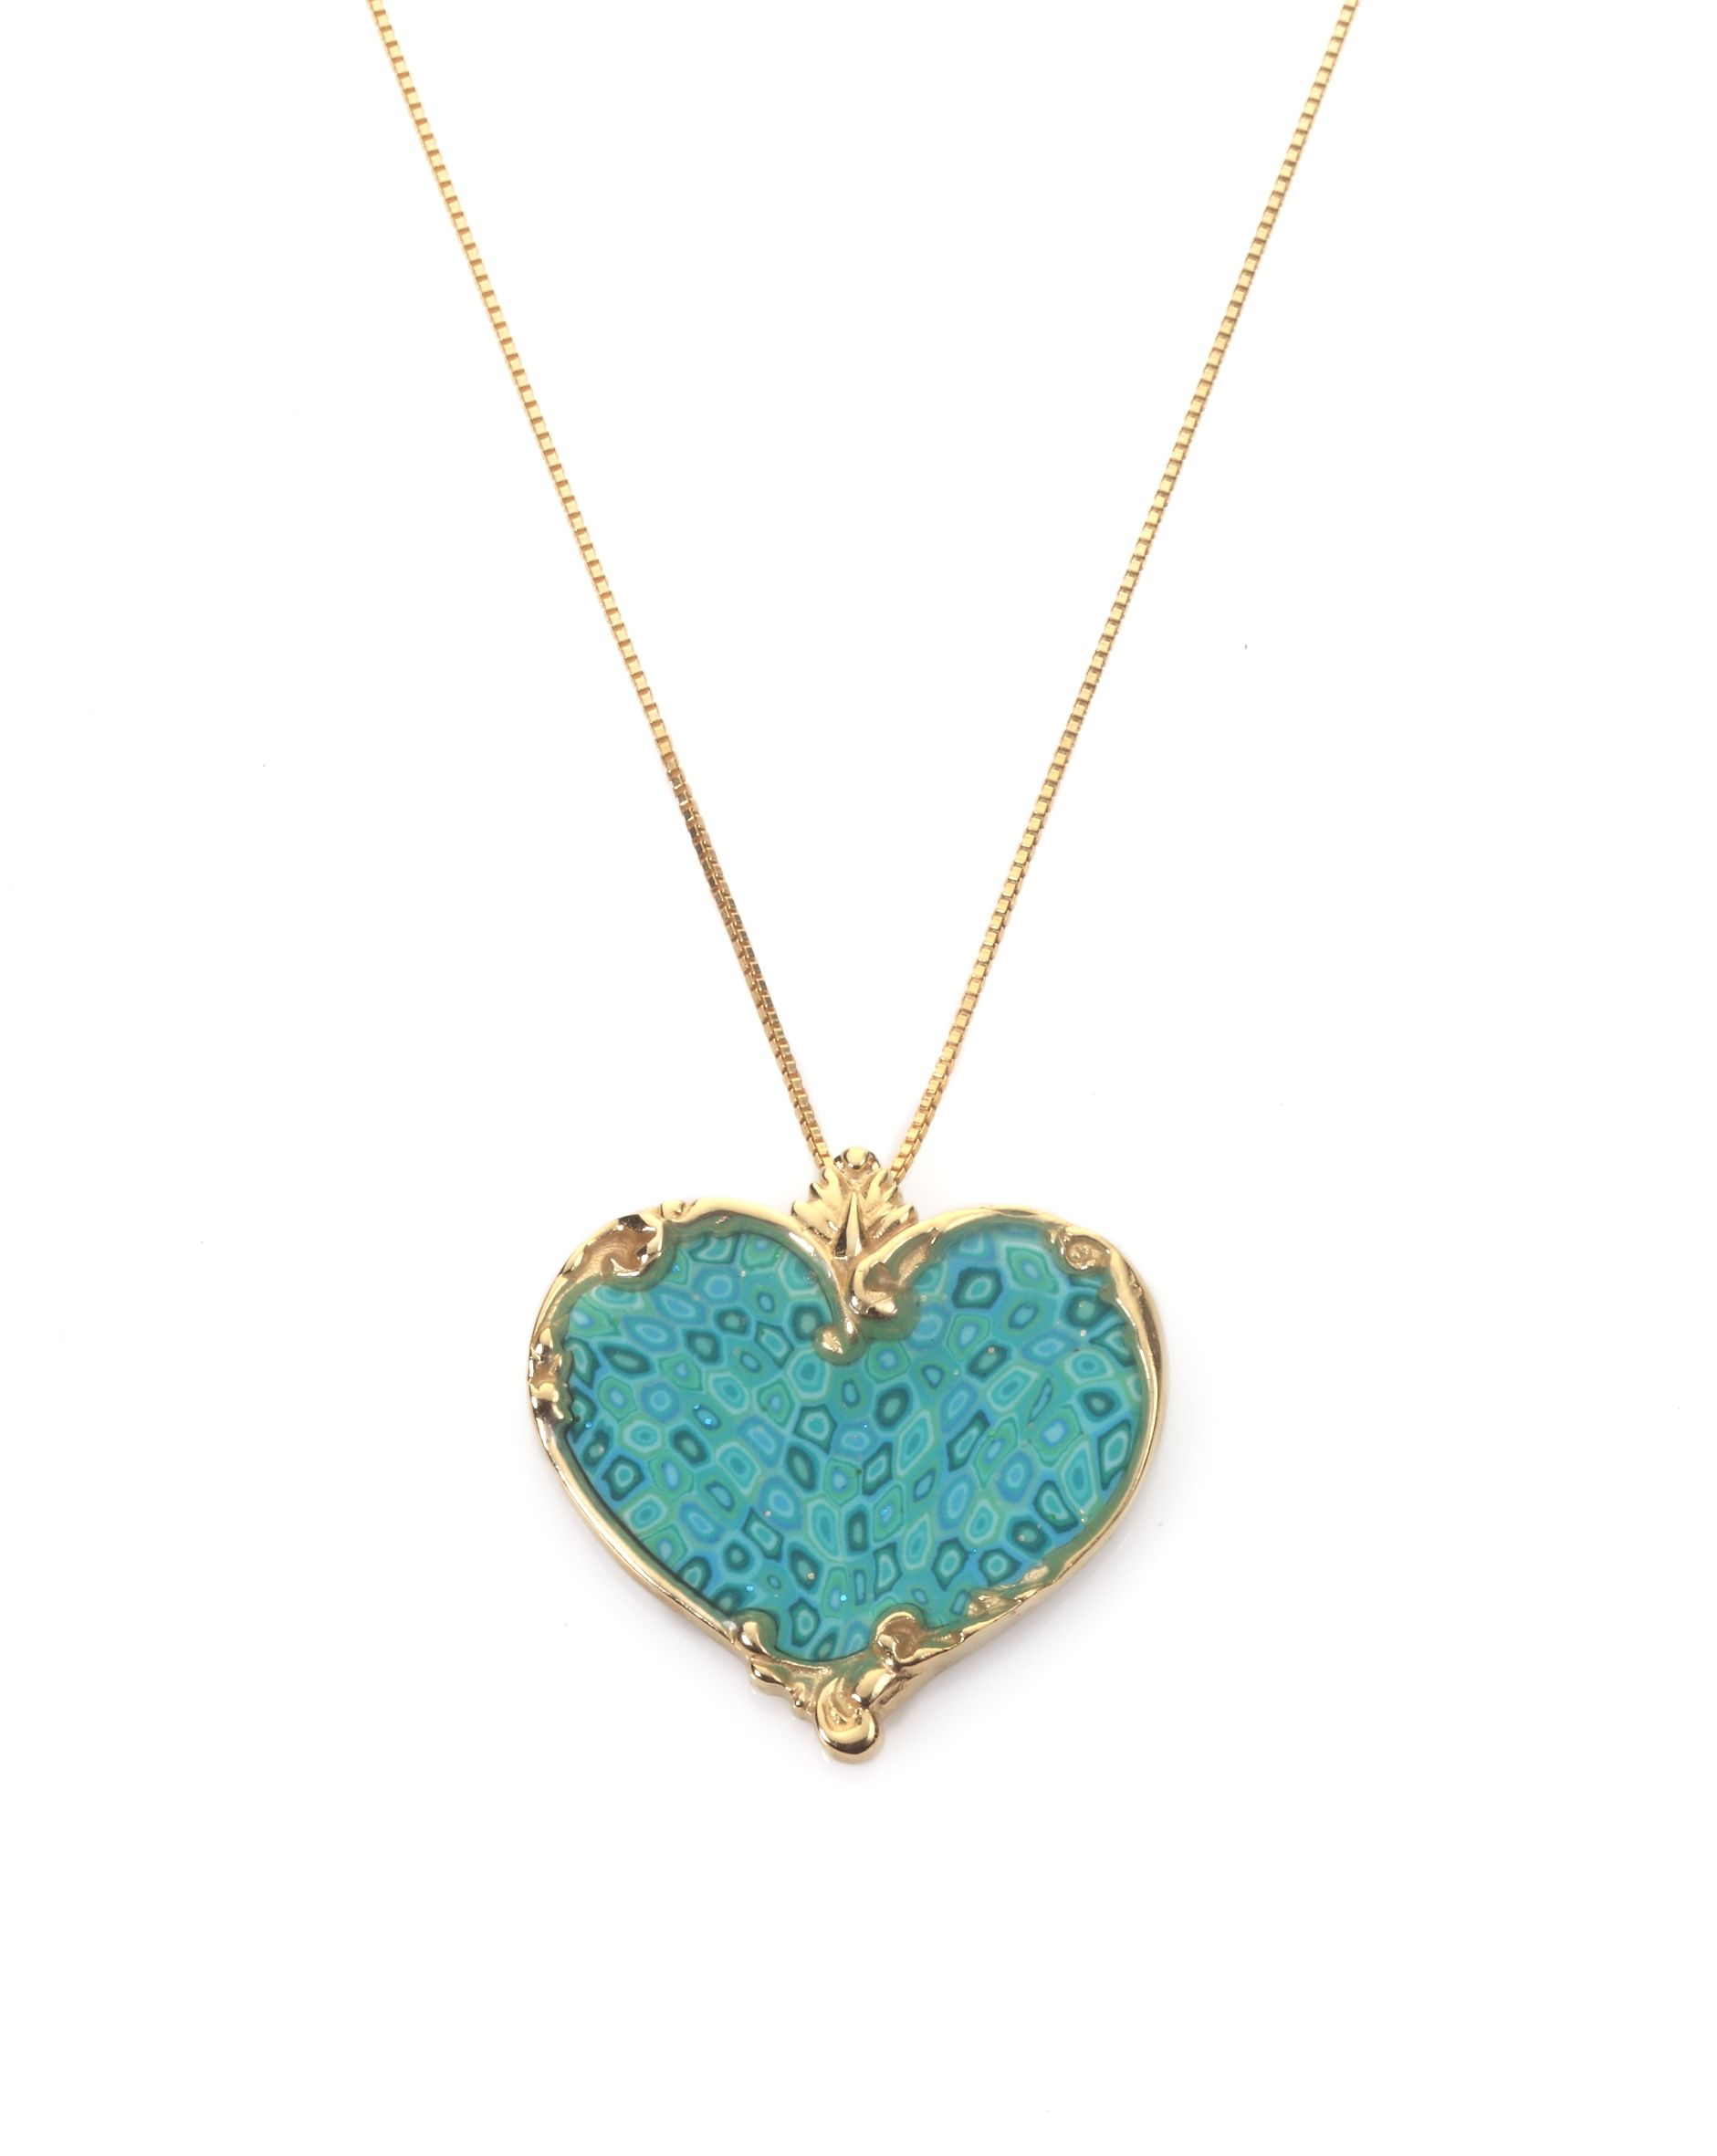 Sure to add a little love to any outfit this adina plastelina sure to add a little love to any outfit this adina plastelina necklace comes in aloadofball Image collections